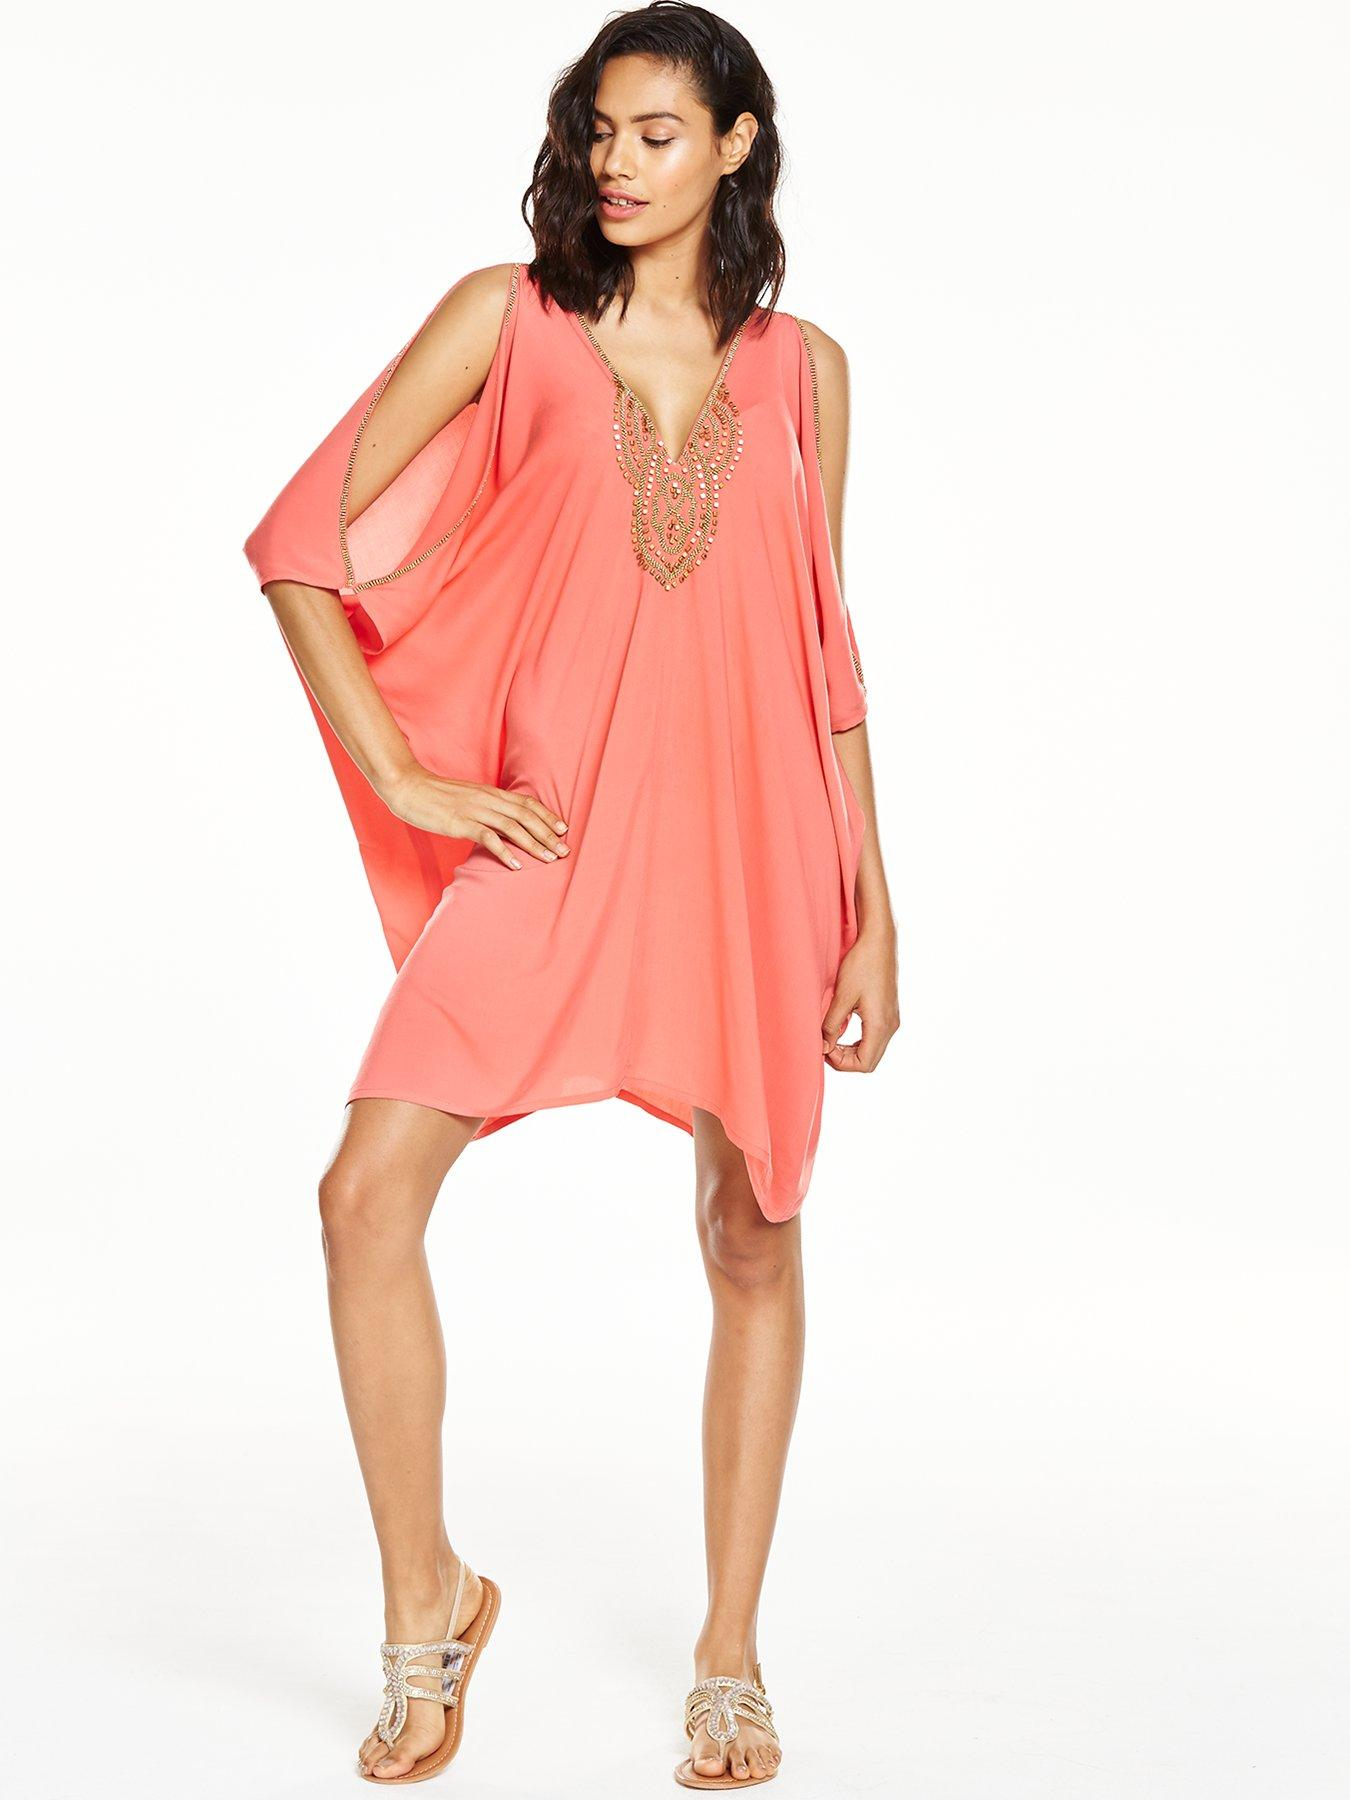 Beach dress, €32. Shop here